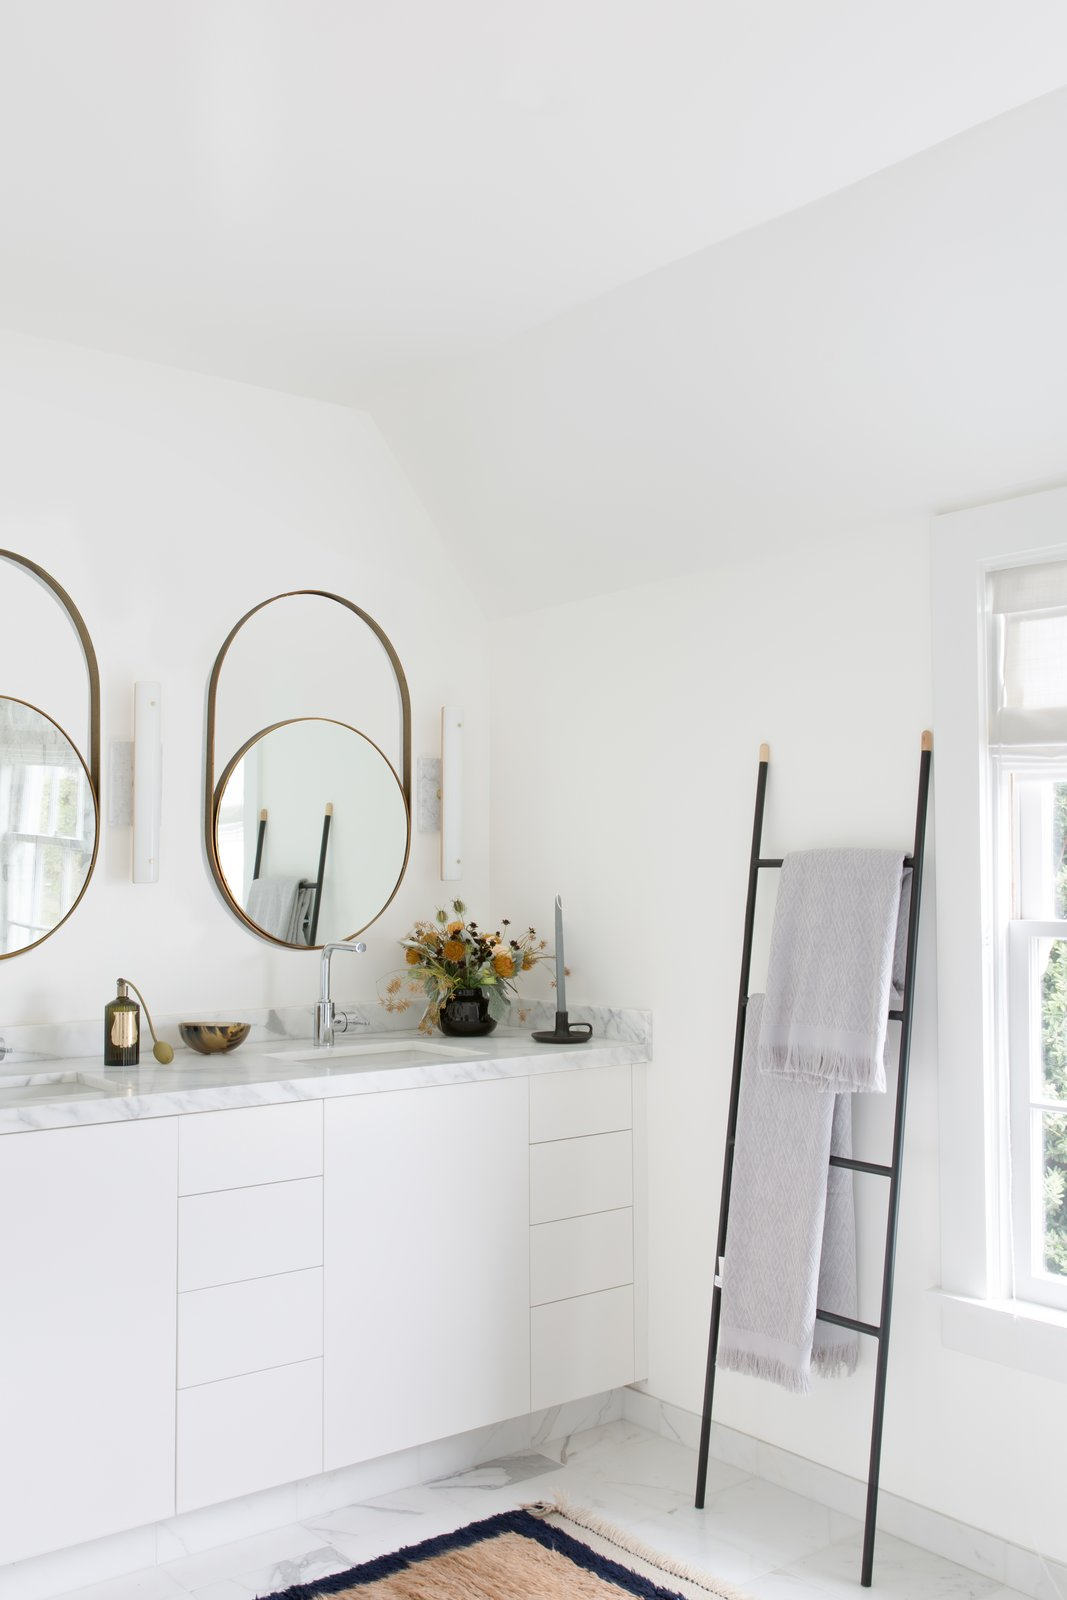 Bath, Undermount, Wall, Light Hardwood, Marble, and Marble Master bathroom with modern round mirrors and towel ladder.  Bath Light Hardwood Marble Undermount Marble Wall Photos from Sea Cliff Preppy Contemporary